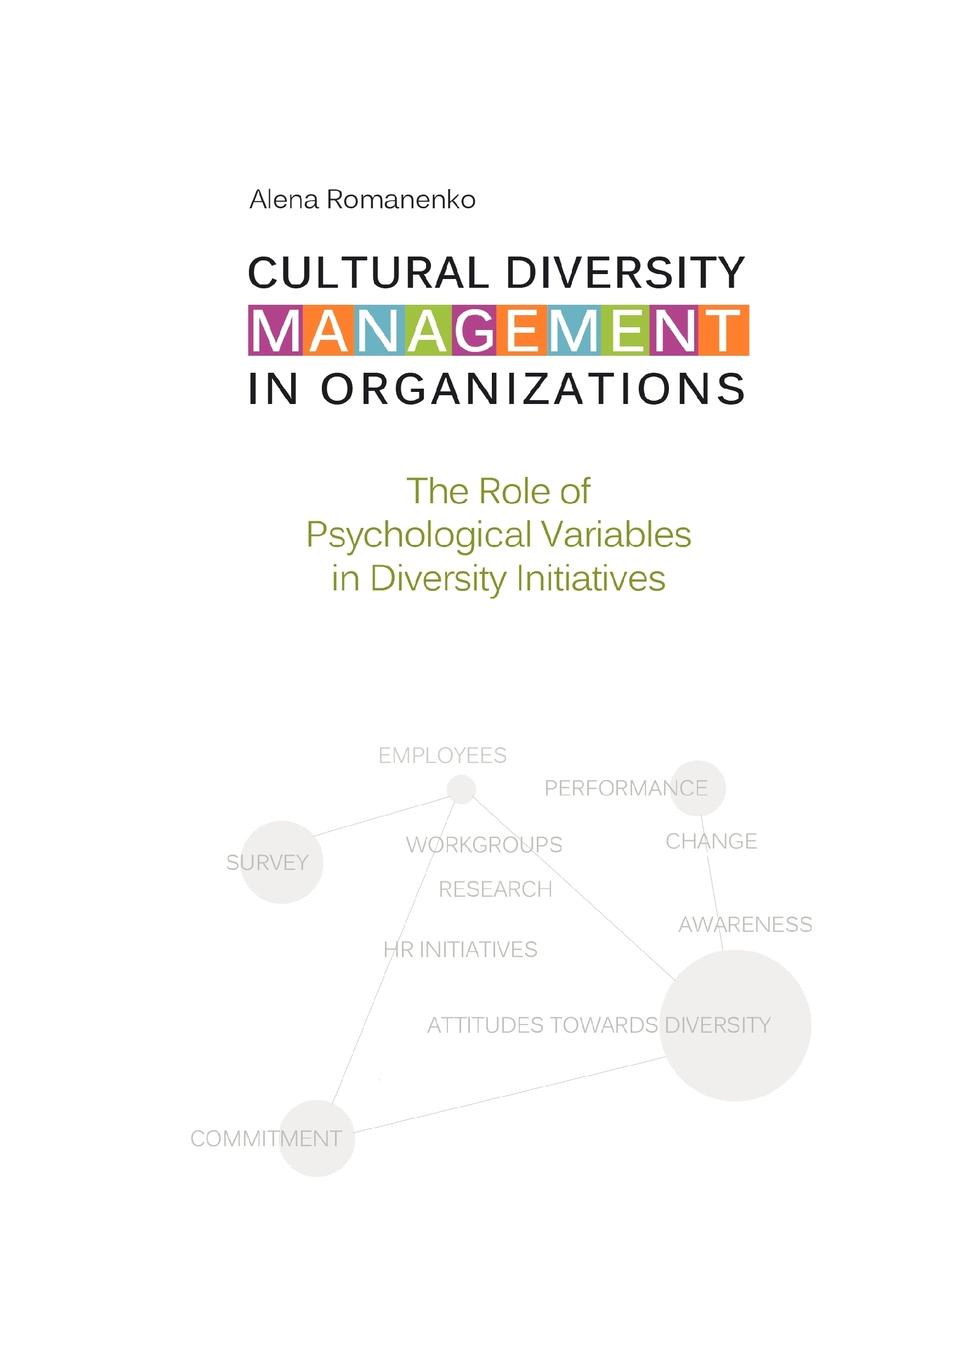 Alena Romanenko. Cultural Diversity Management in Organizations. The Role of Psychological Variables in Diversity Initiatives